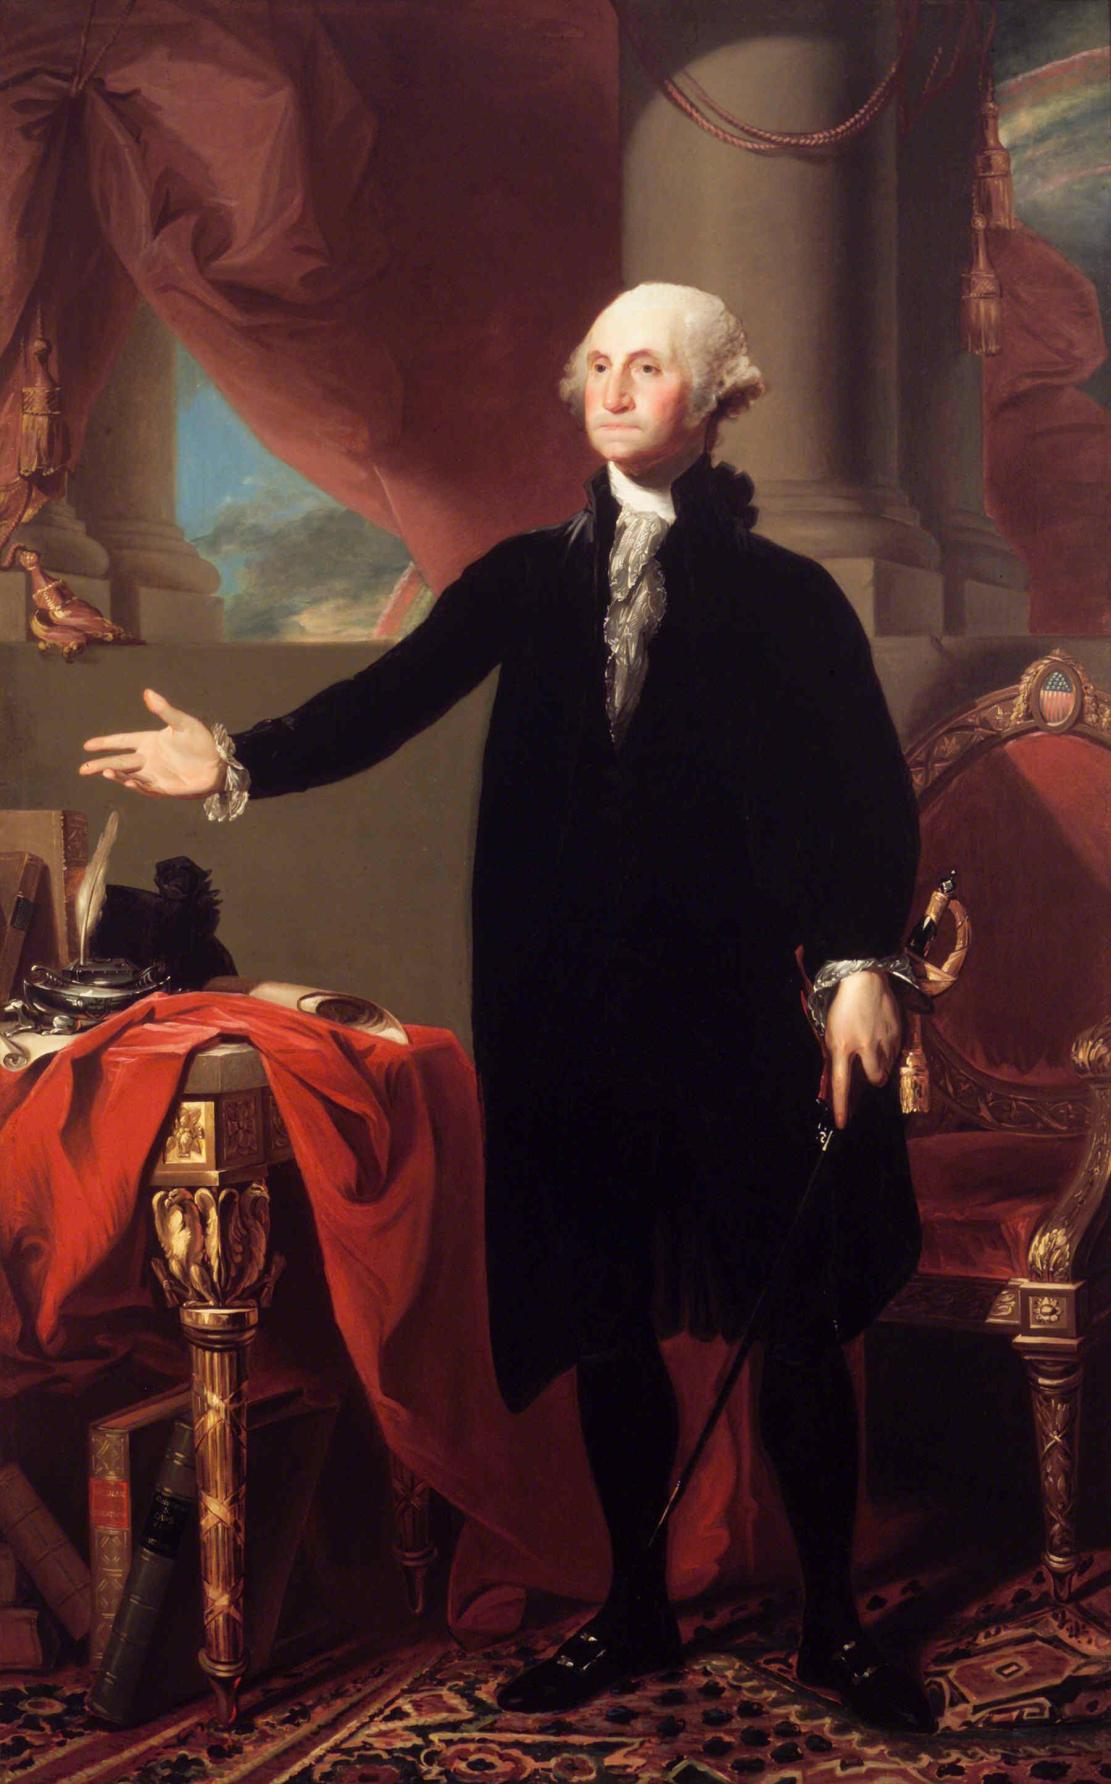 gilbert_stuart_portrait_of_george_washington_(the_landowne_portrait)